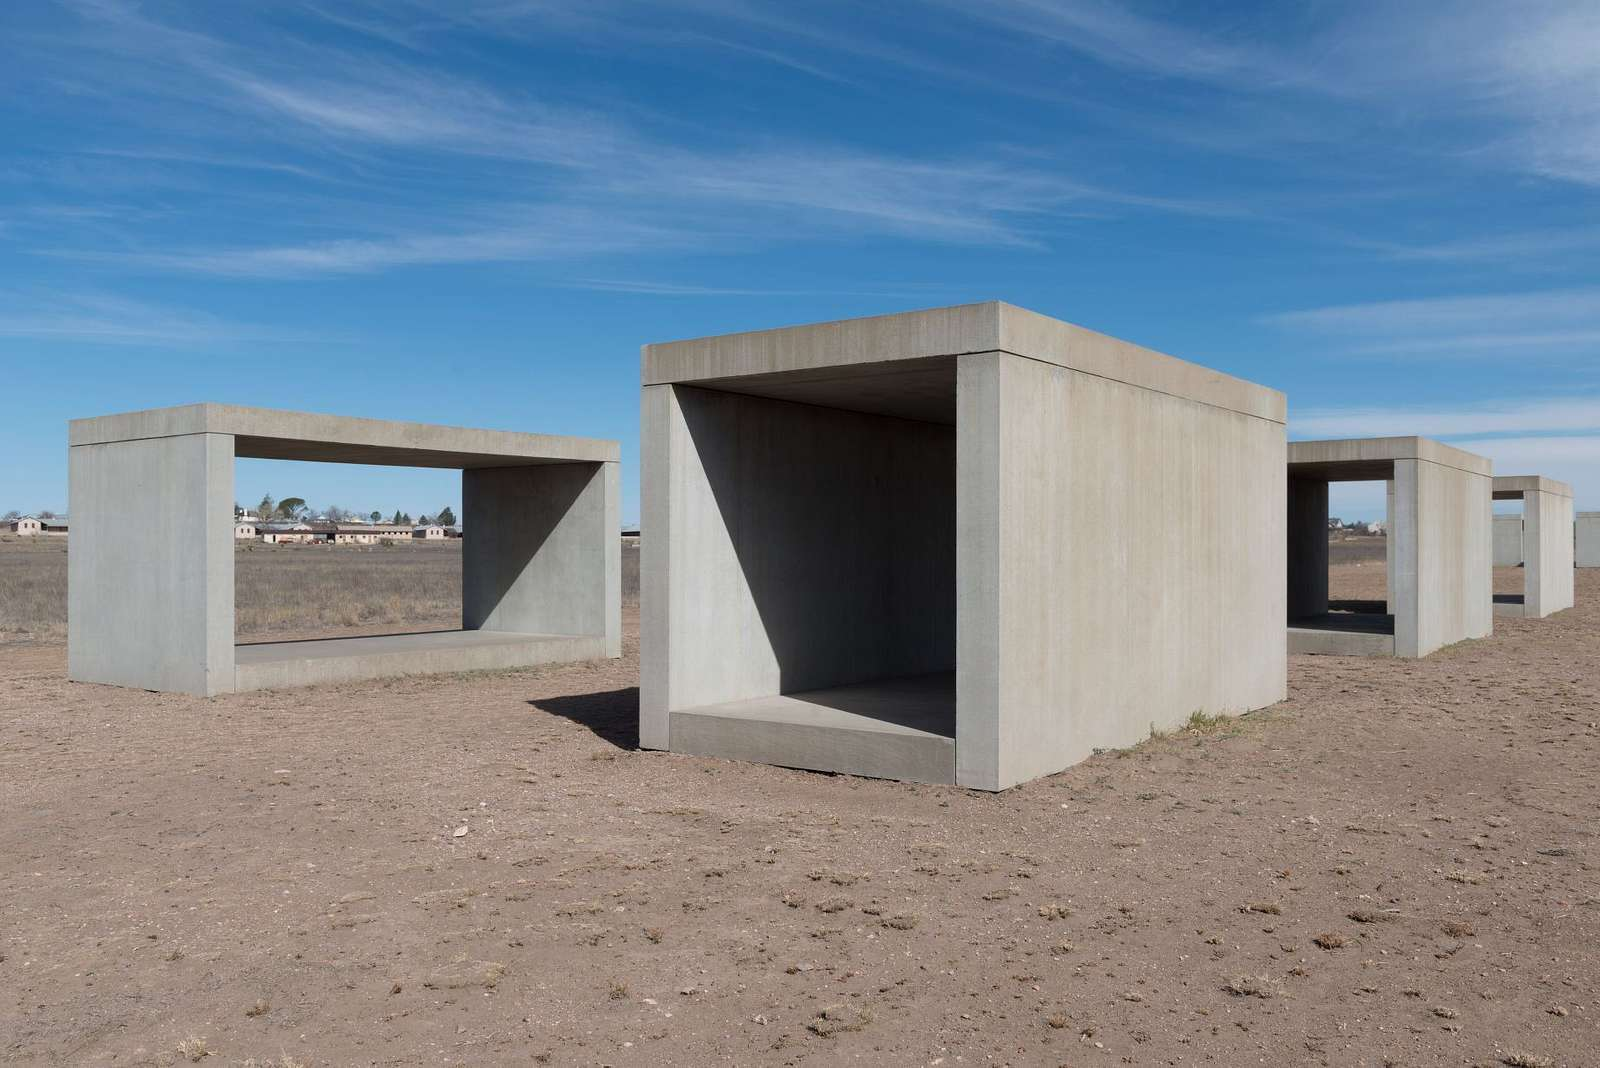 """Untitled box-like art, sometimes called """"Judd's cubes,"""" by """"Minimalist"""" artist Donald Judd, though he detested the """"minimalist"""" description, on the grounds of the Chinati Foundation, or La Fundacion Chinati, a contemporary art museum in Marfa, a surprisingly sophisticated town in the Texas high desert"""